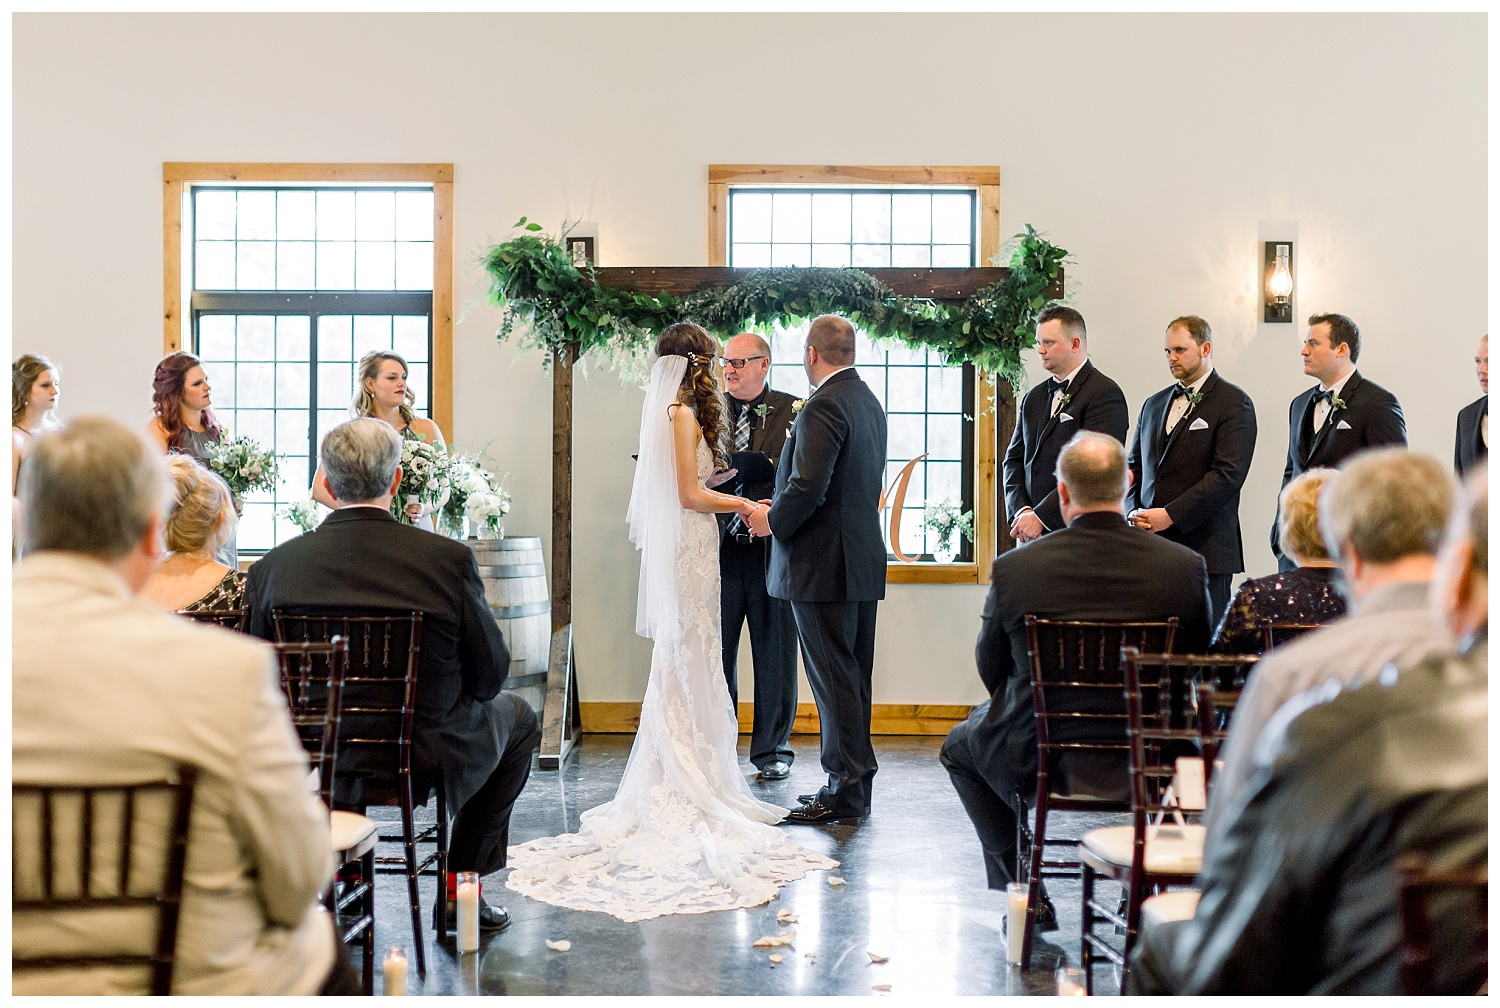 Willow-Creek-Wedding-Photography-Kansas-Elizabeth-Ladean-S+D0330-photo-_7073.jpg